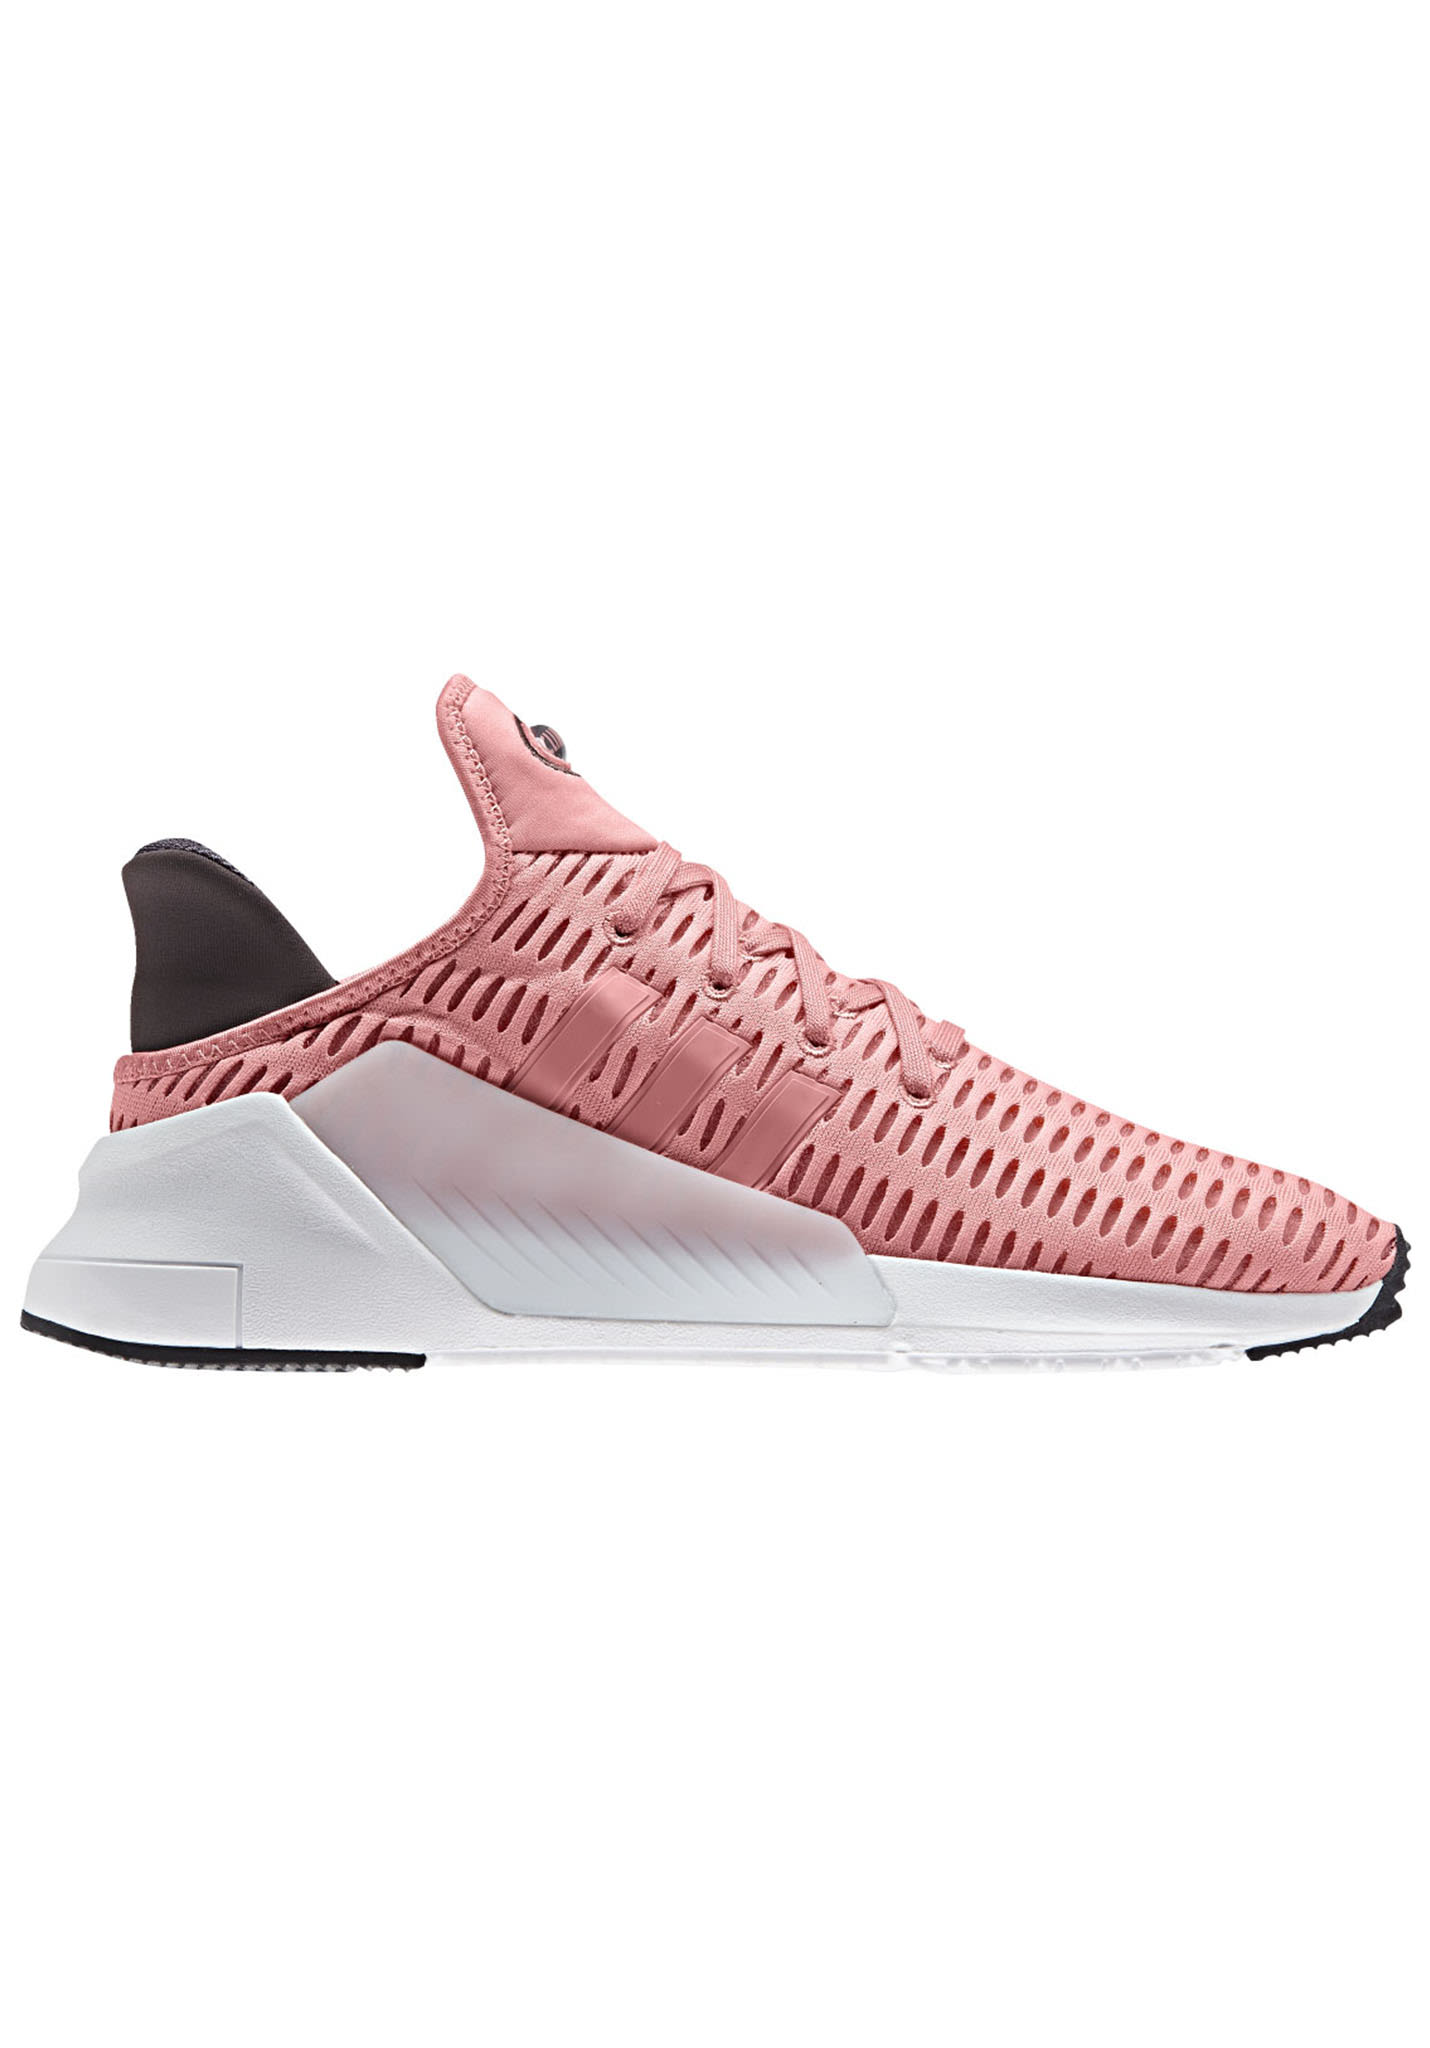 new products b9eca 18a92 Baskets Femme - Adidas Originals Climacool 1 Blanche SRZ94347TC basket  adidas climacool